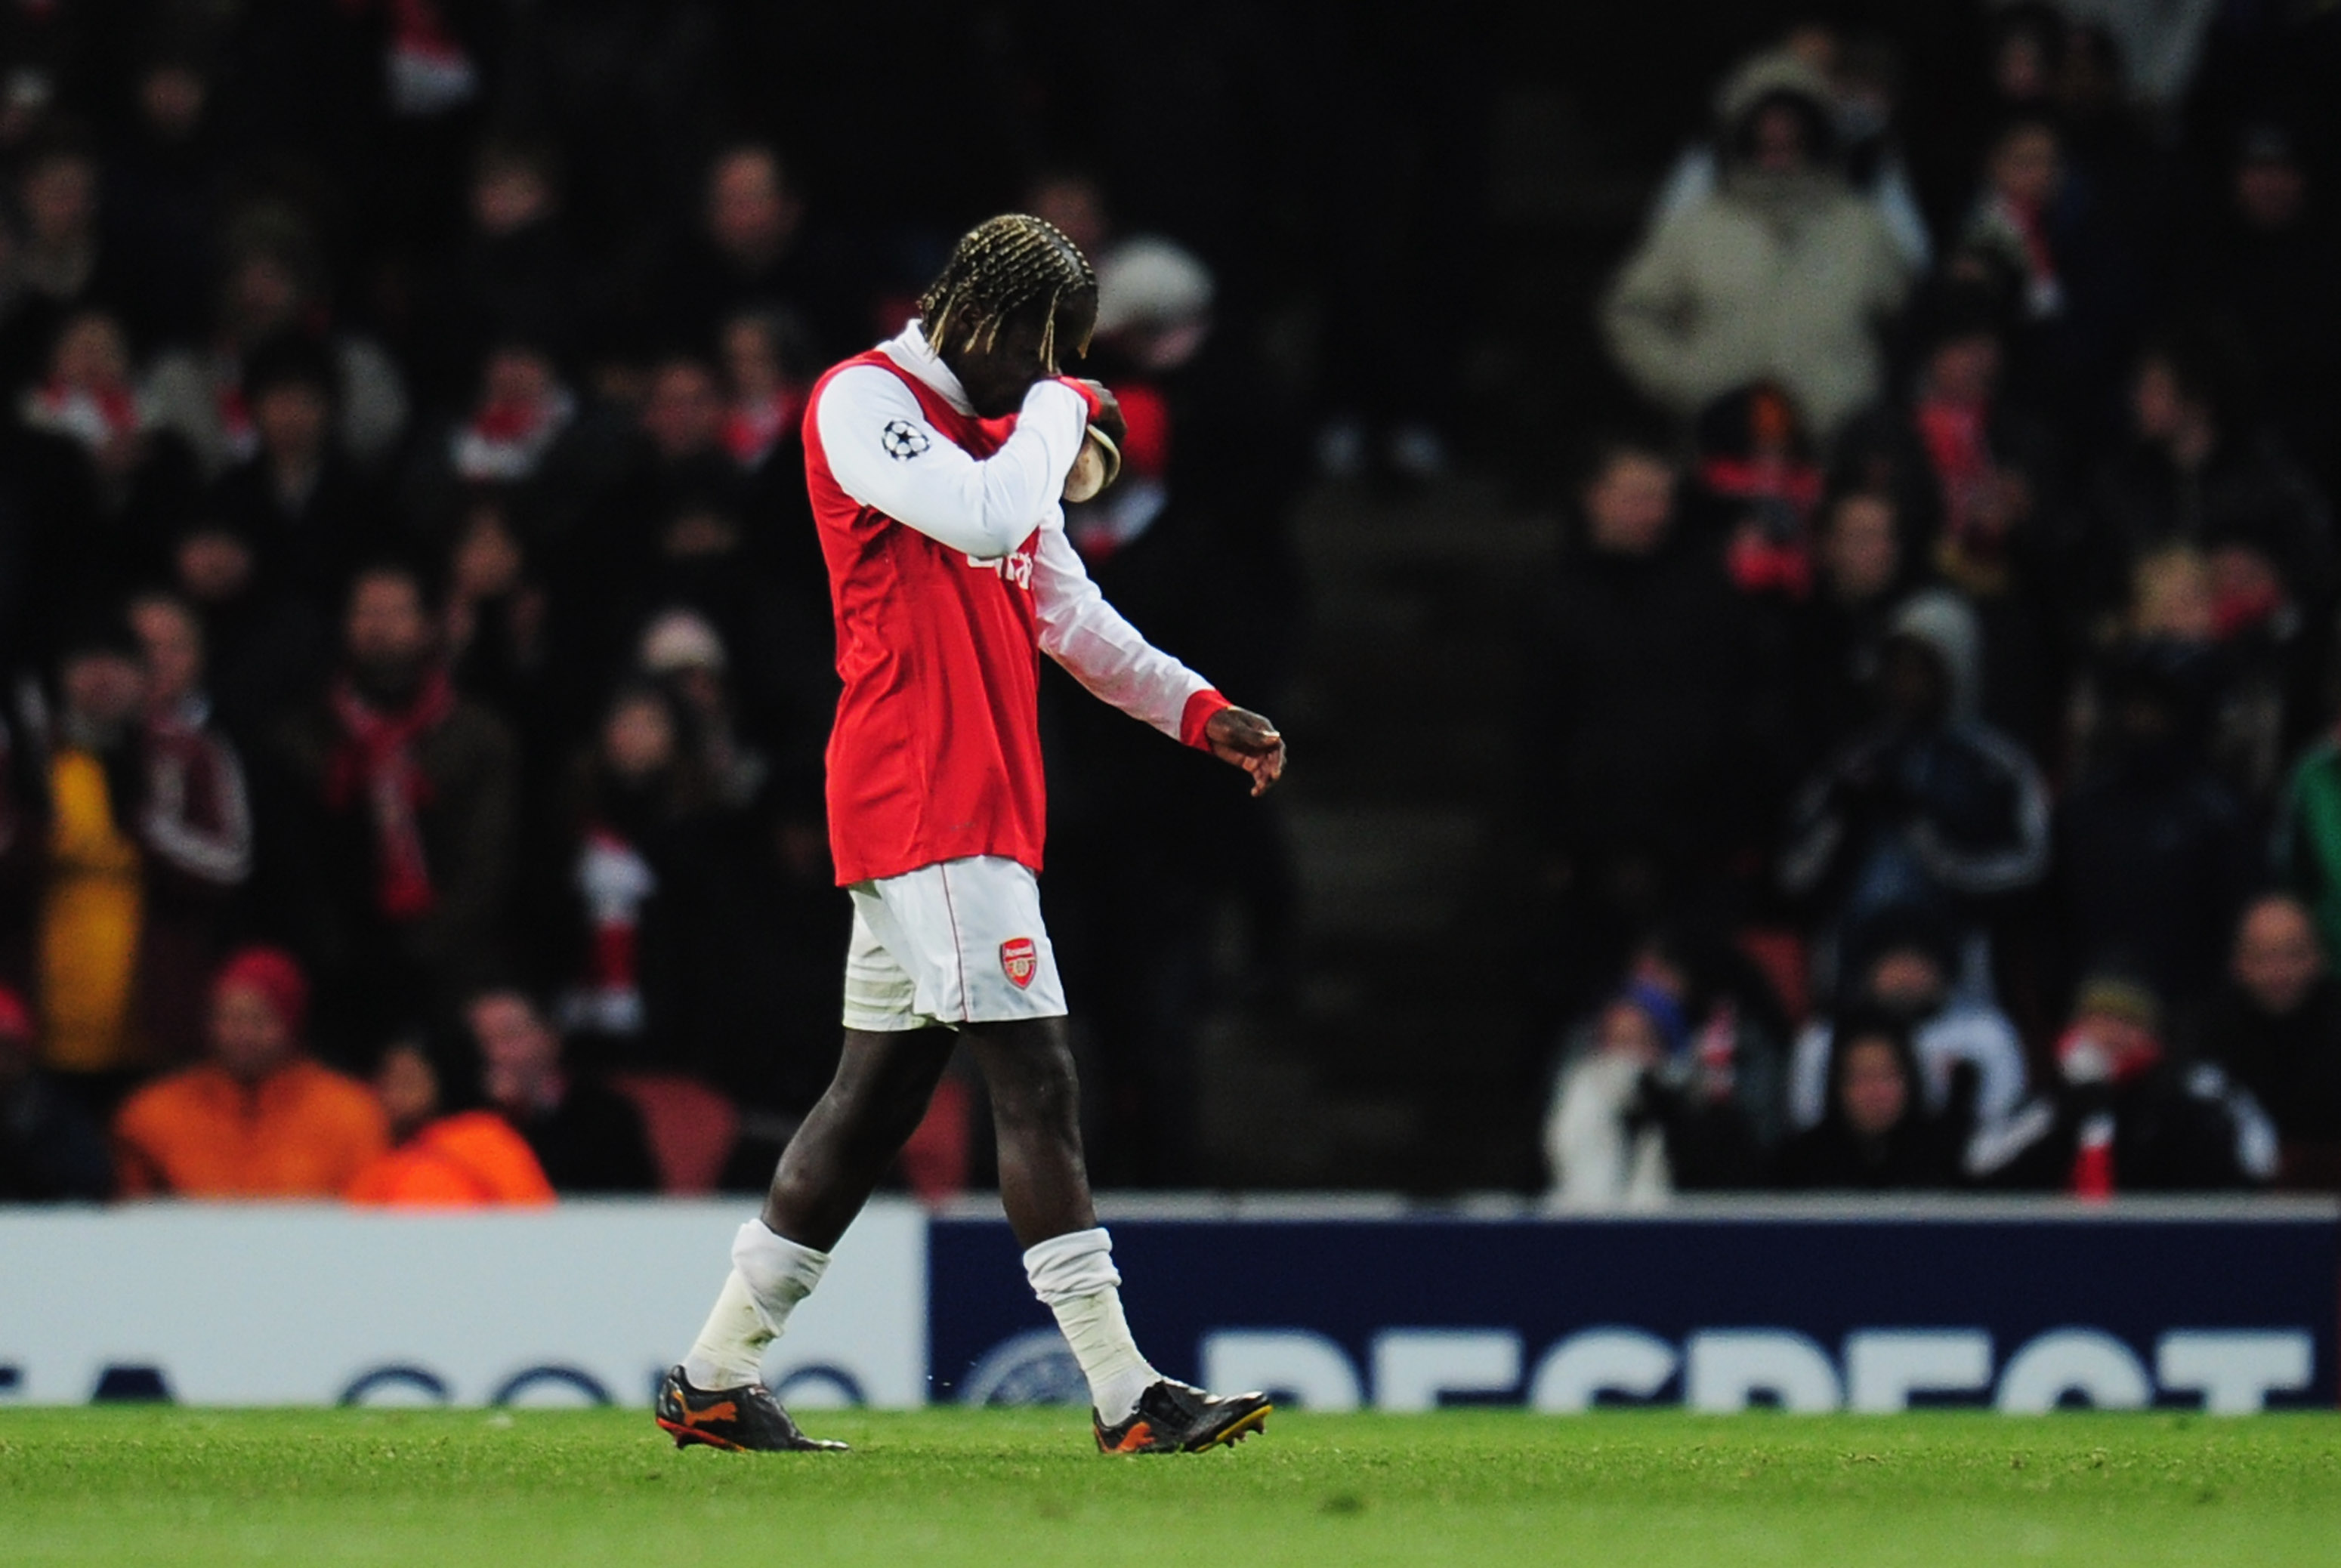 LONDON, ENGLAND - DECEMBER 08:  Despair for Bacary Sagna of Arsenal as he is sent off during UEFA Champions League Group H match between Arsenal and FK Partizan Belgrade at the Emirates Stadium on December 8, 2010 in London, England.  (Photo by Shaun Bott